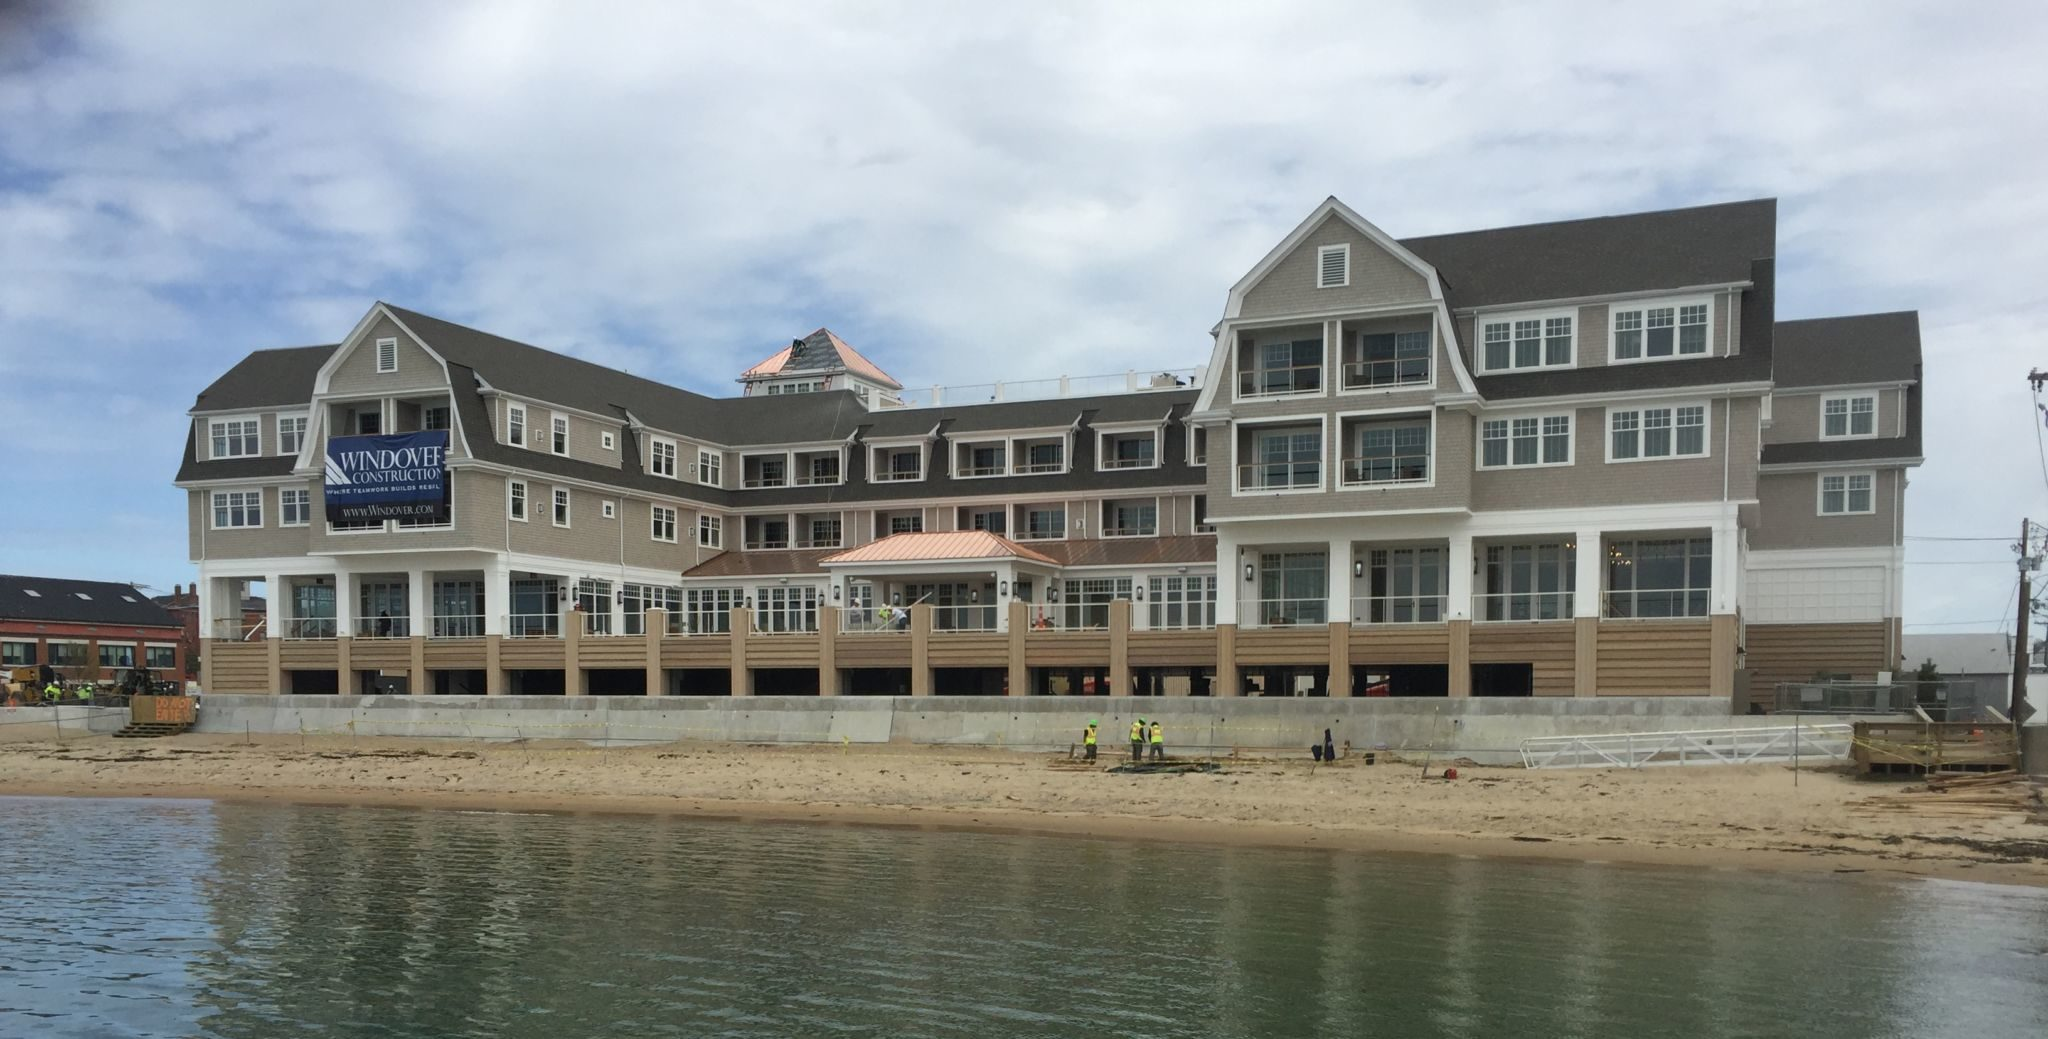 Construction of the Beauport Hotel in Gloucester, Massachusetts was led by construction management firm Windover Construction. Photos courtesy Peter Vanderwarker